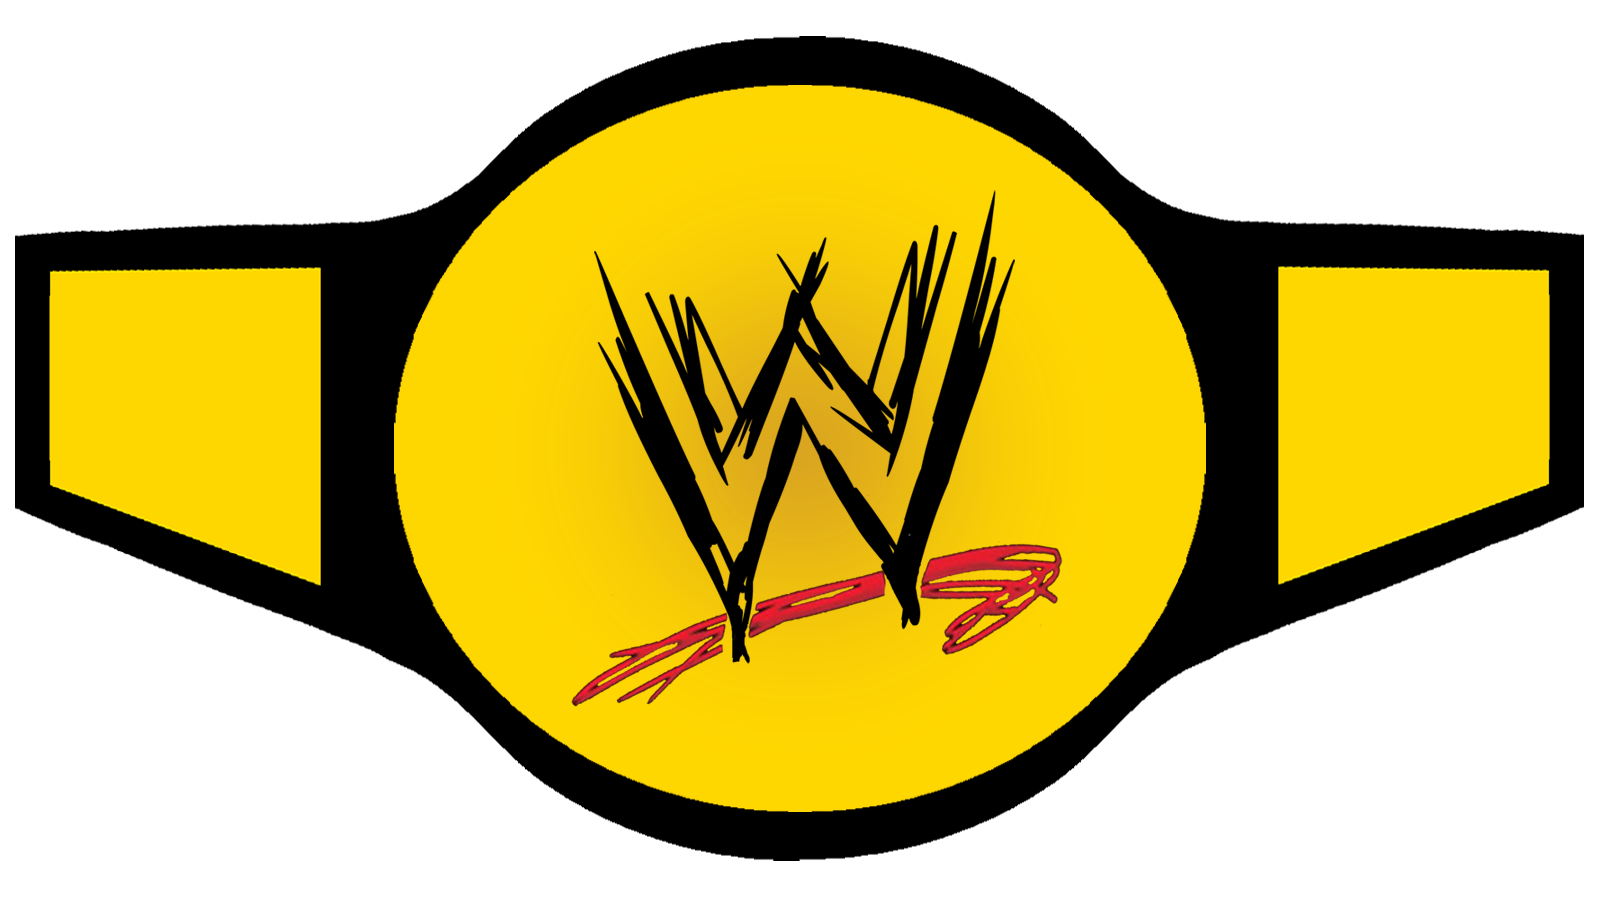 1600x900 26 Images Of WWE Championship Belt Template Blank